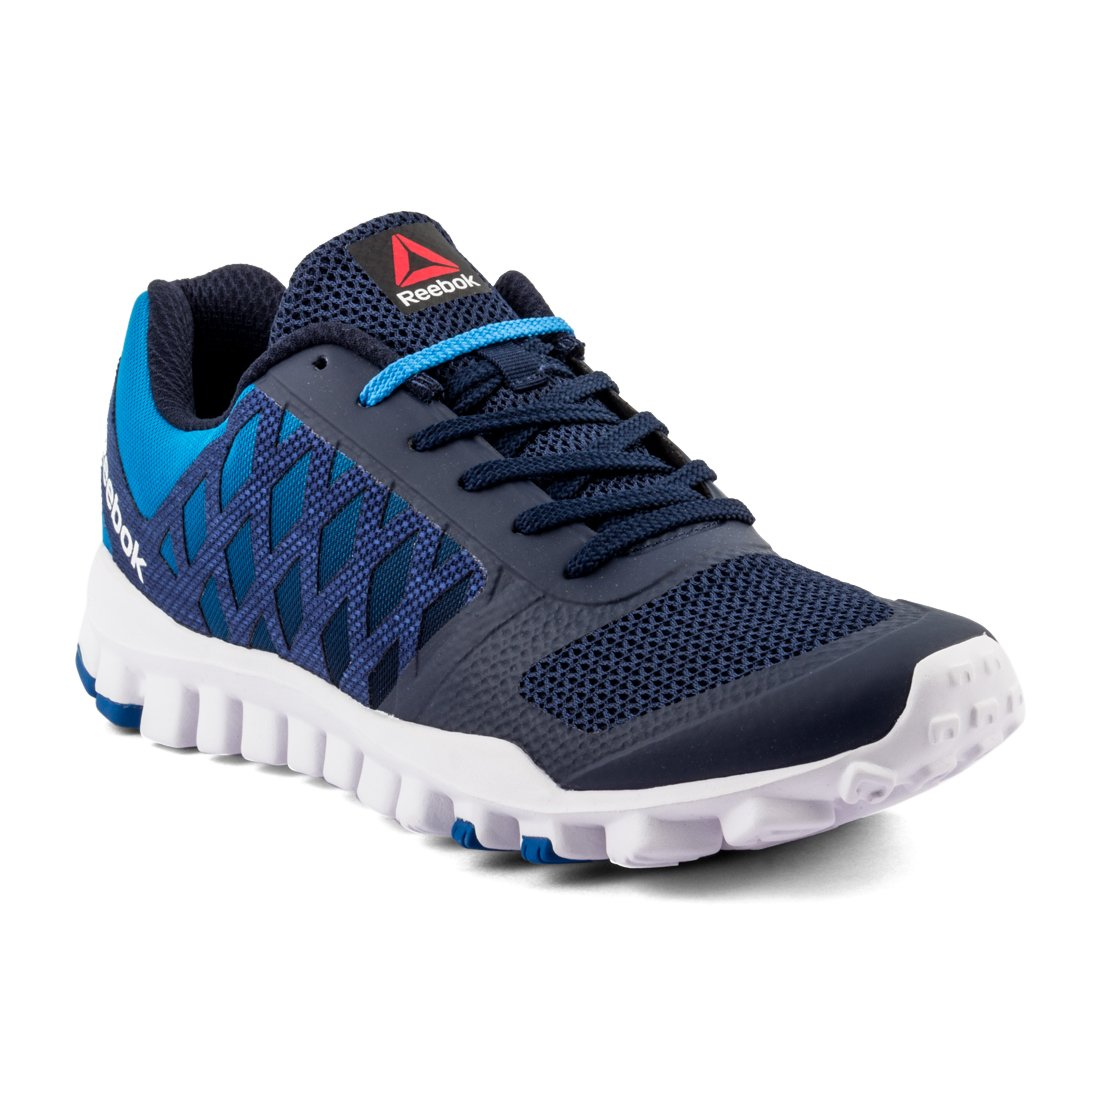 c21f8542f Reebok Realflex TR LP Men's Sports Running SHOE-UK-11: Buy Online at Low  Prices in India - Amazon.in